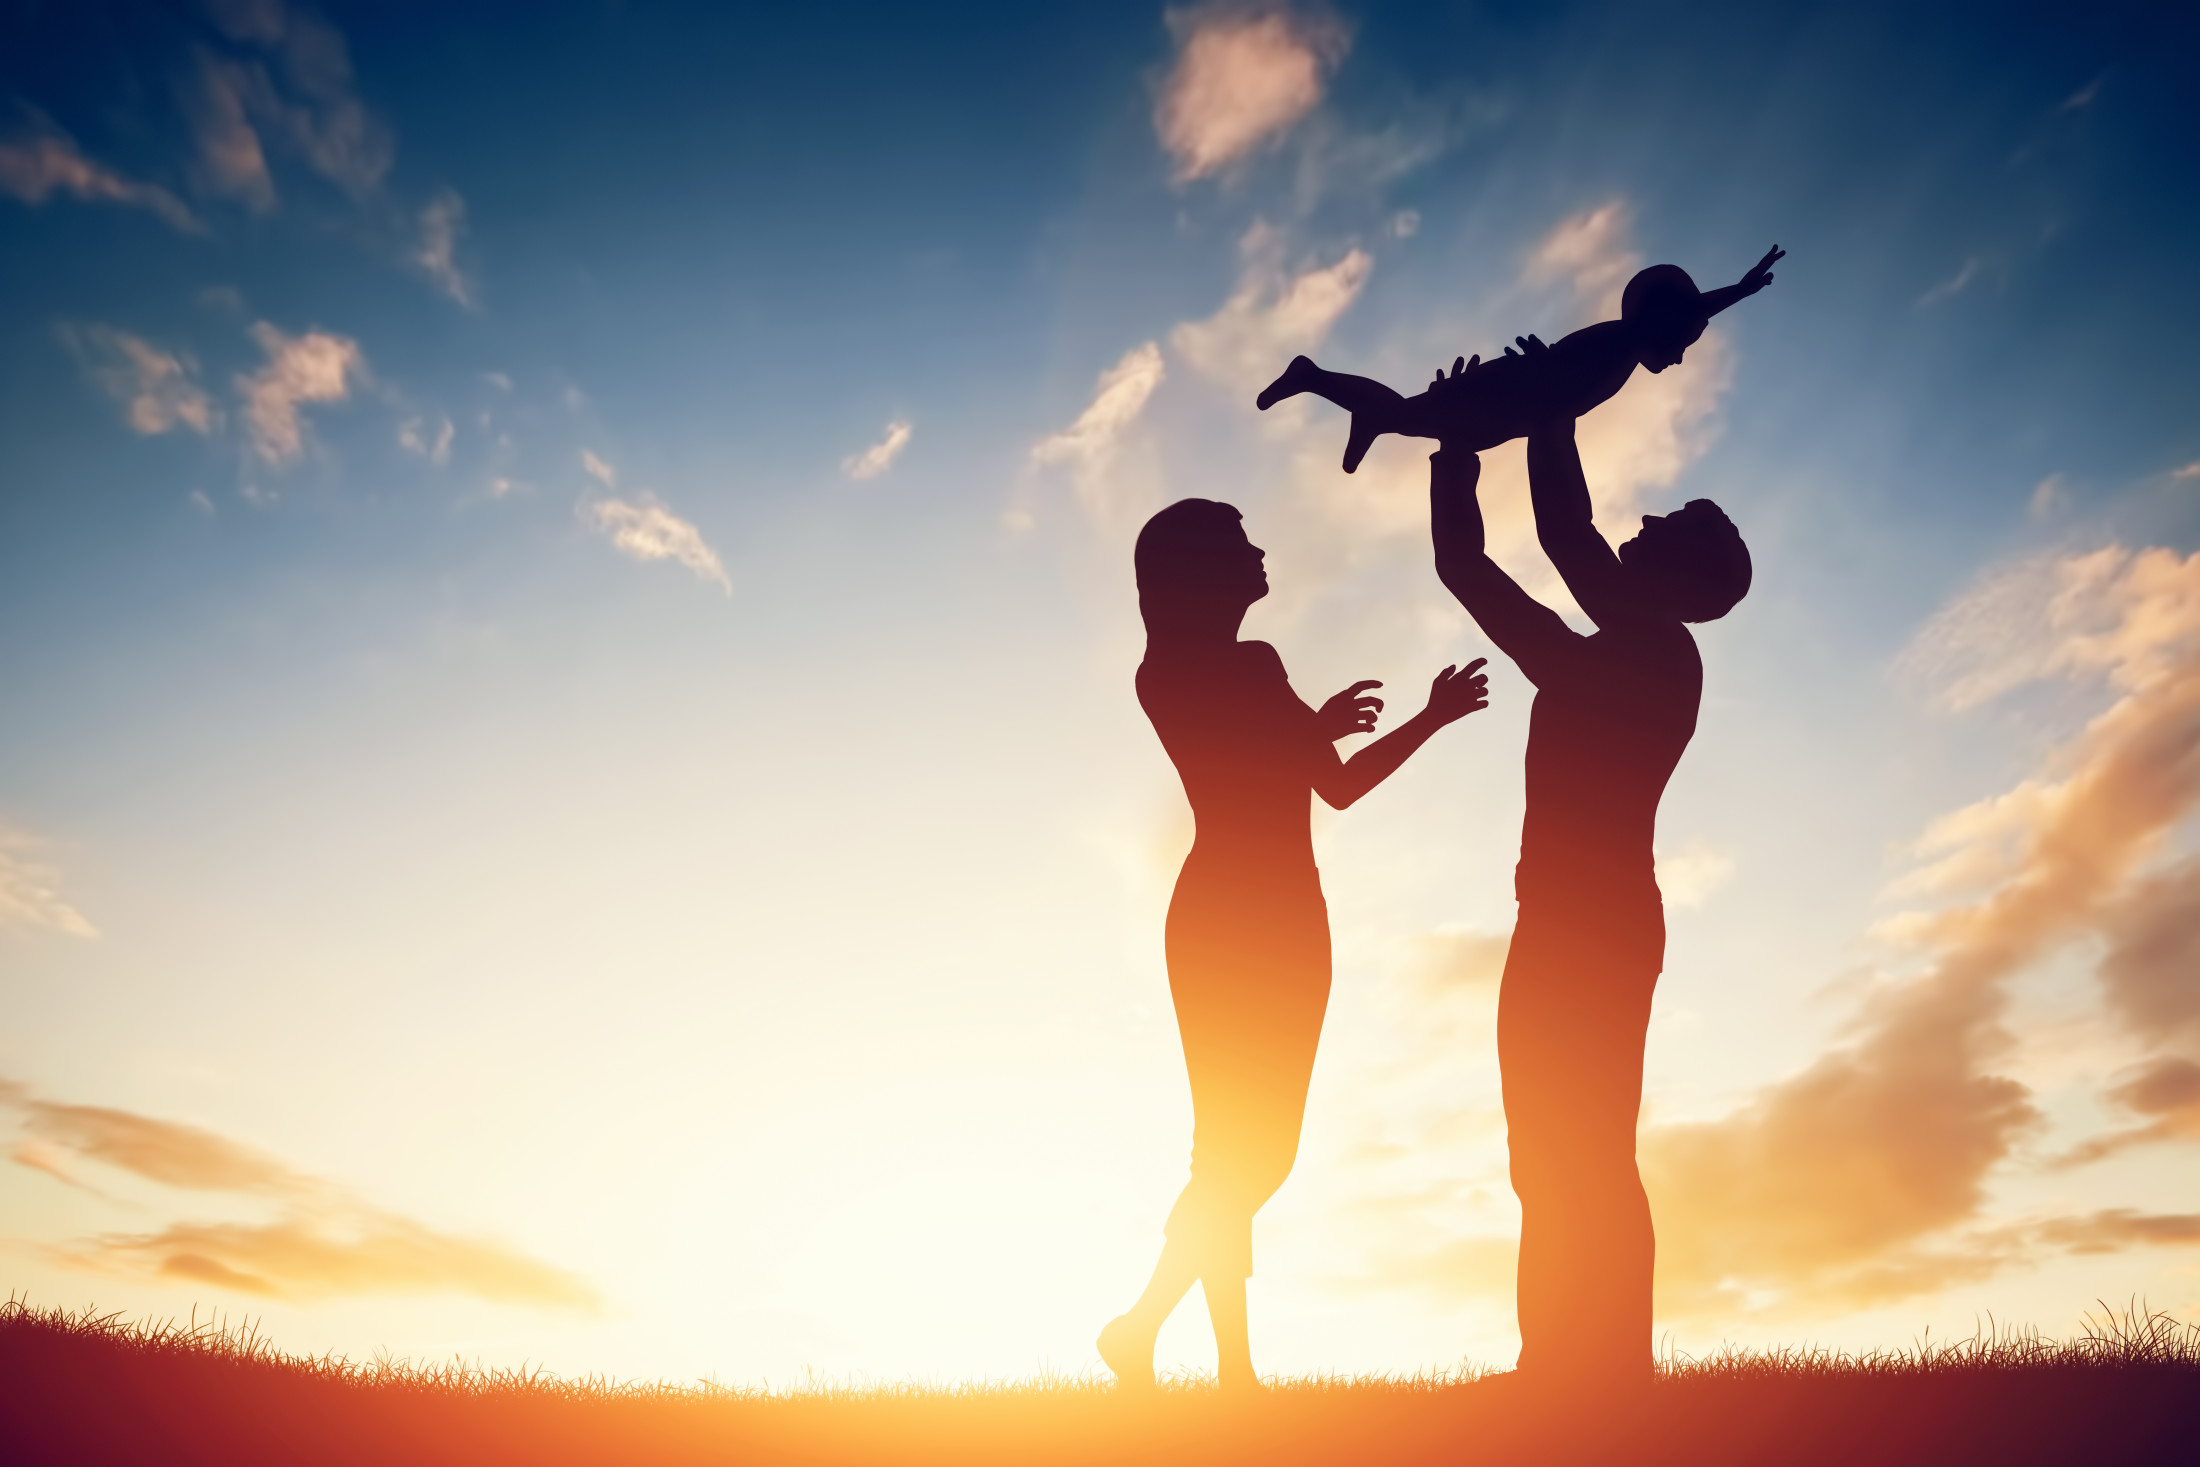 bigstock-Happy-family-together-parents-87654161